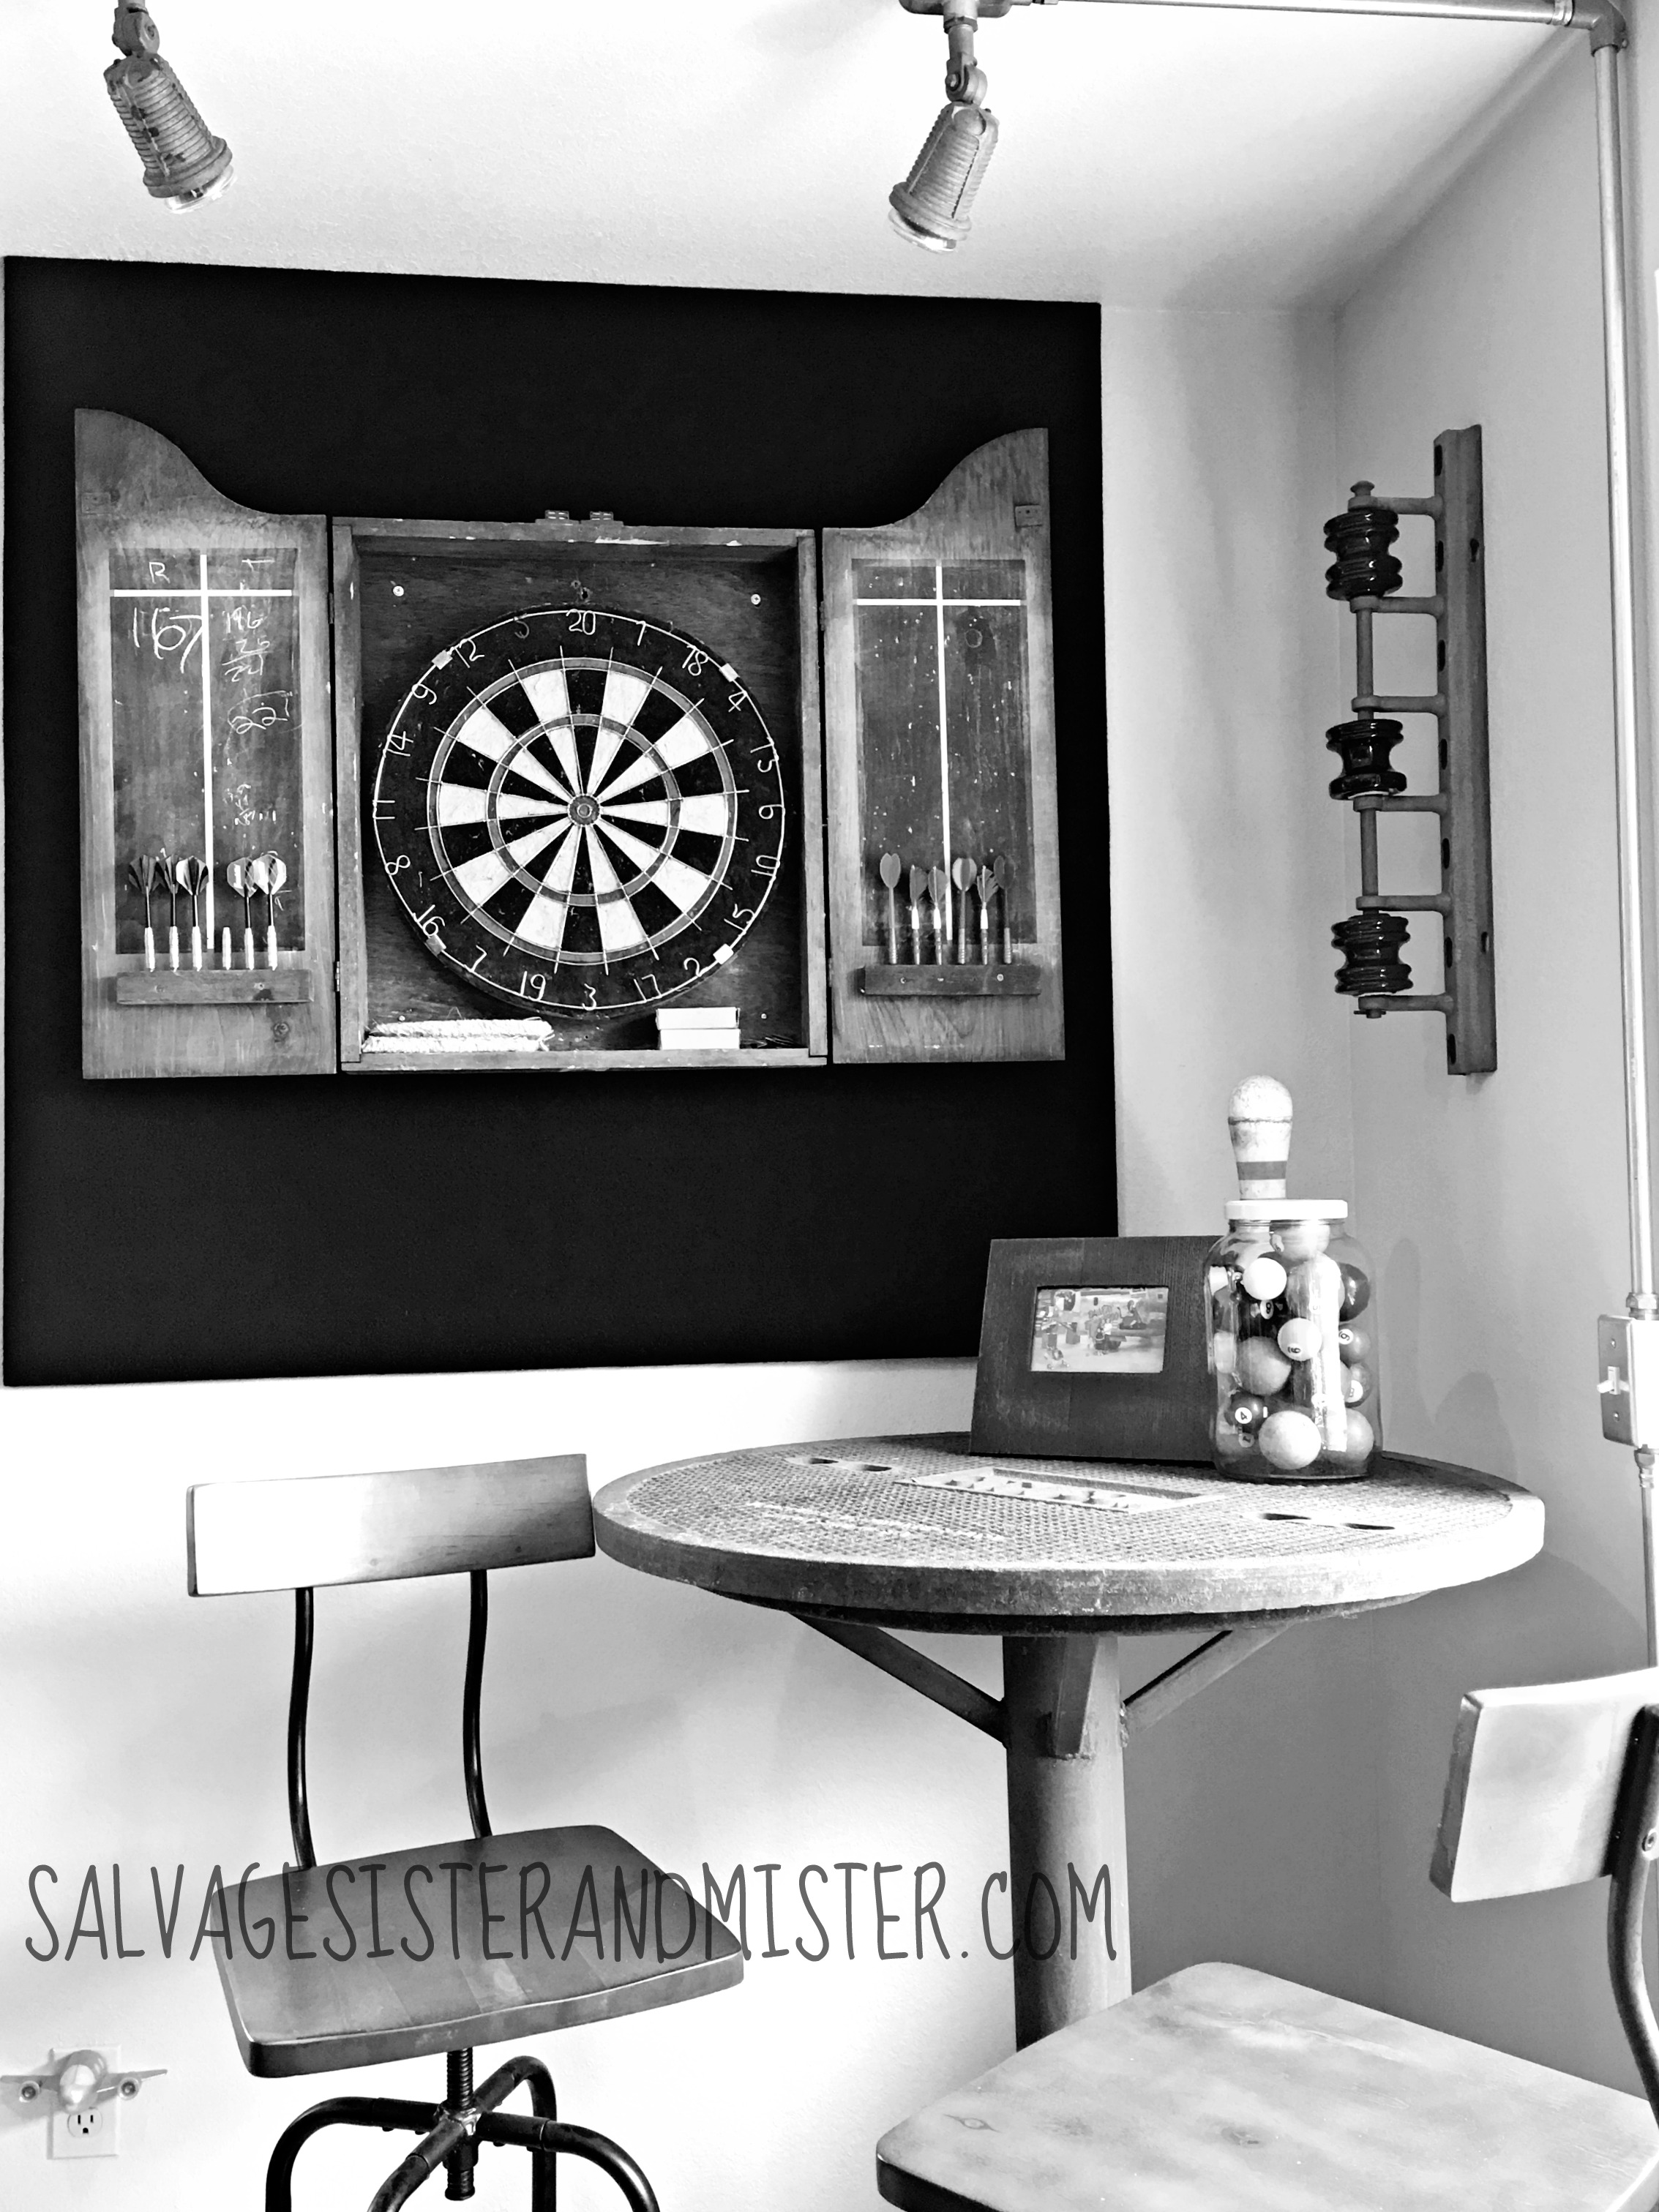 We are participating in the One Room Challenge- to makeover a room in 7 weeks. We have a room above our garage that has been a catch all. We are doing a budget friendly makeover to this part of our home. For our third week we are showing this industrial bar table, dart board, and light area that we have added. Perfect for a man cave. Junk decor galore.